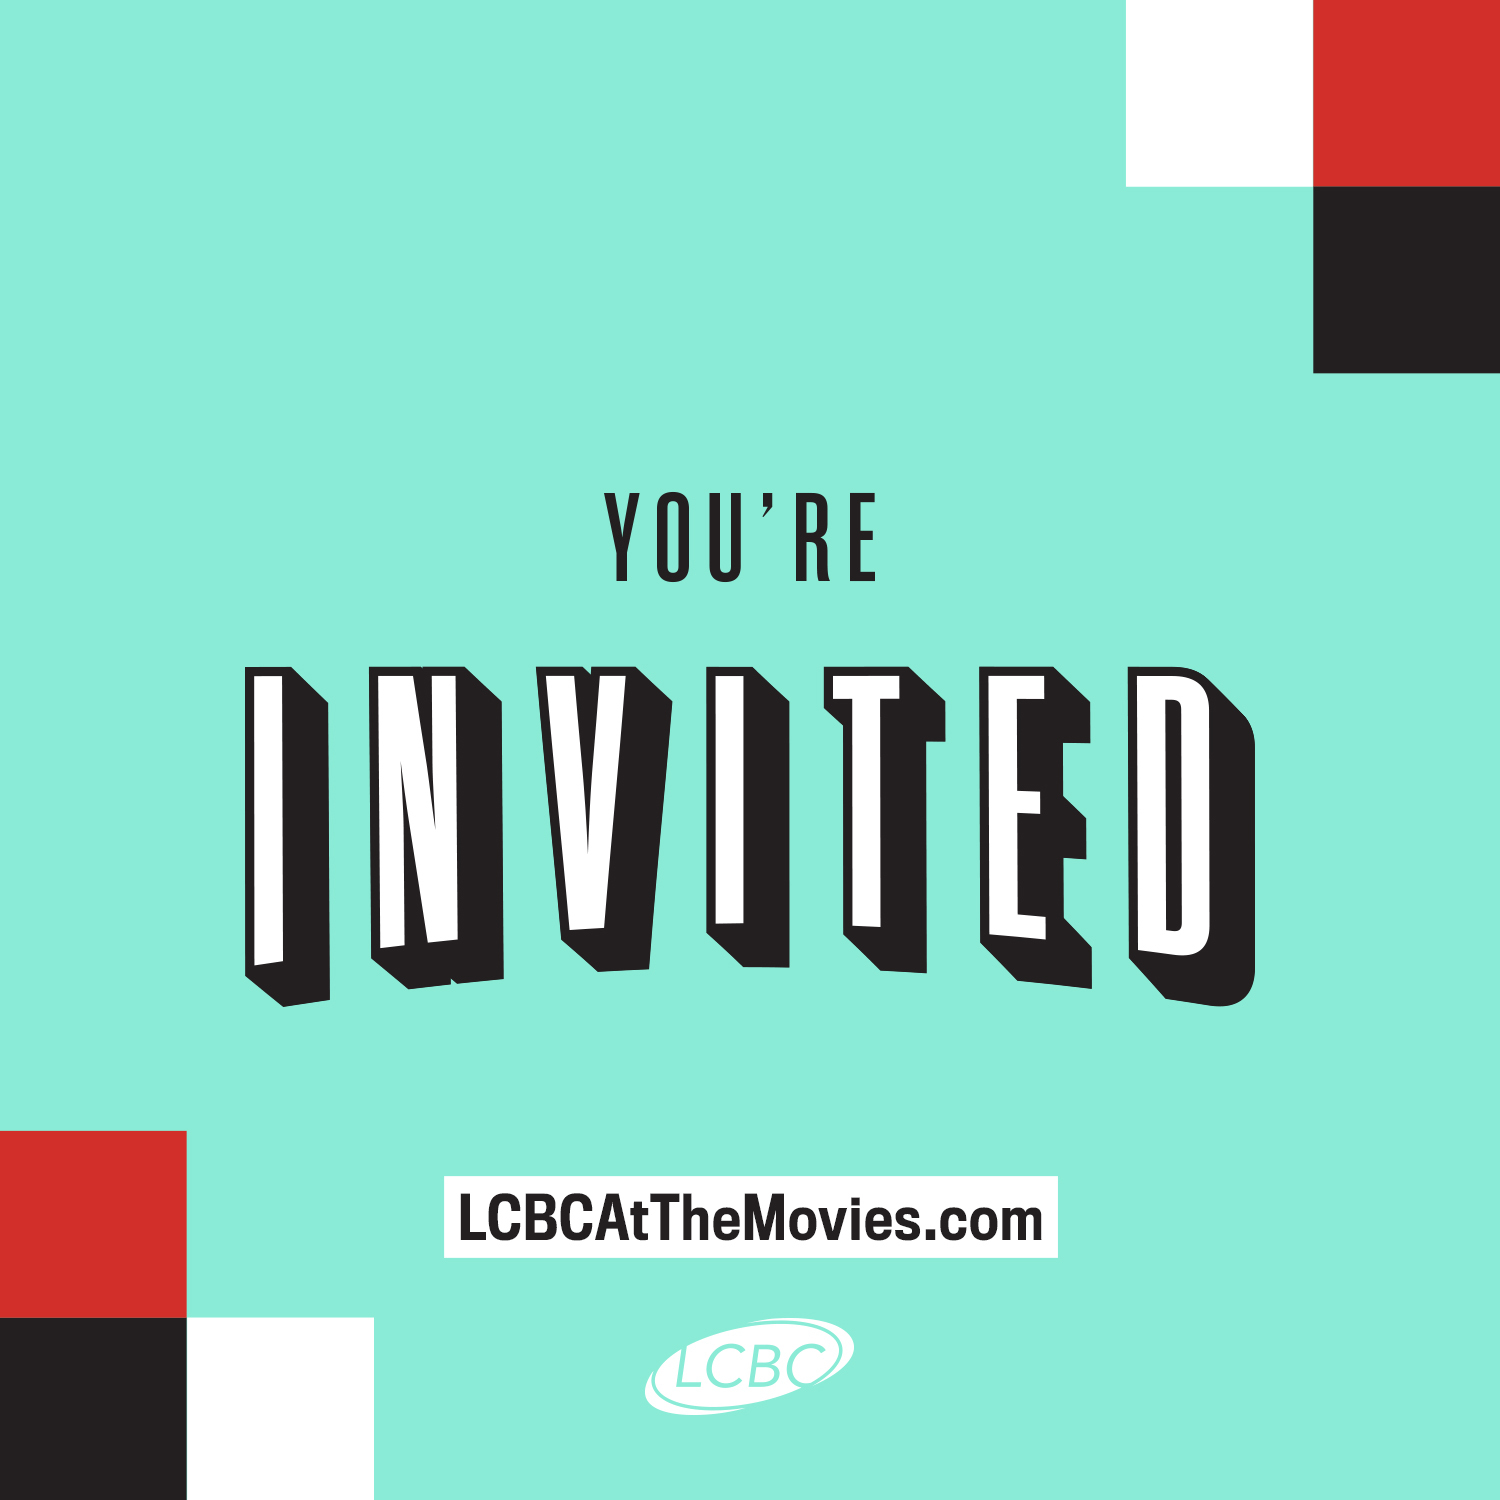 LCBC At The Movies Social Graphics